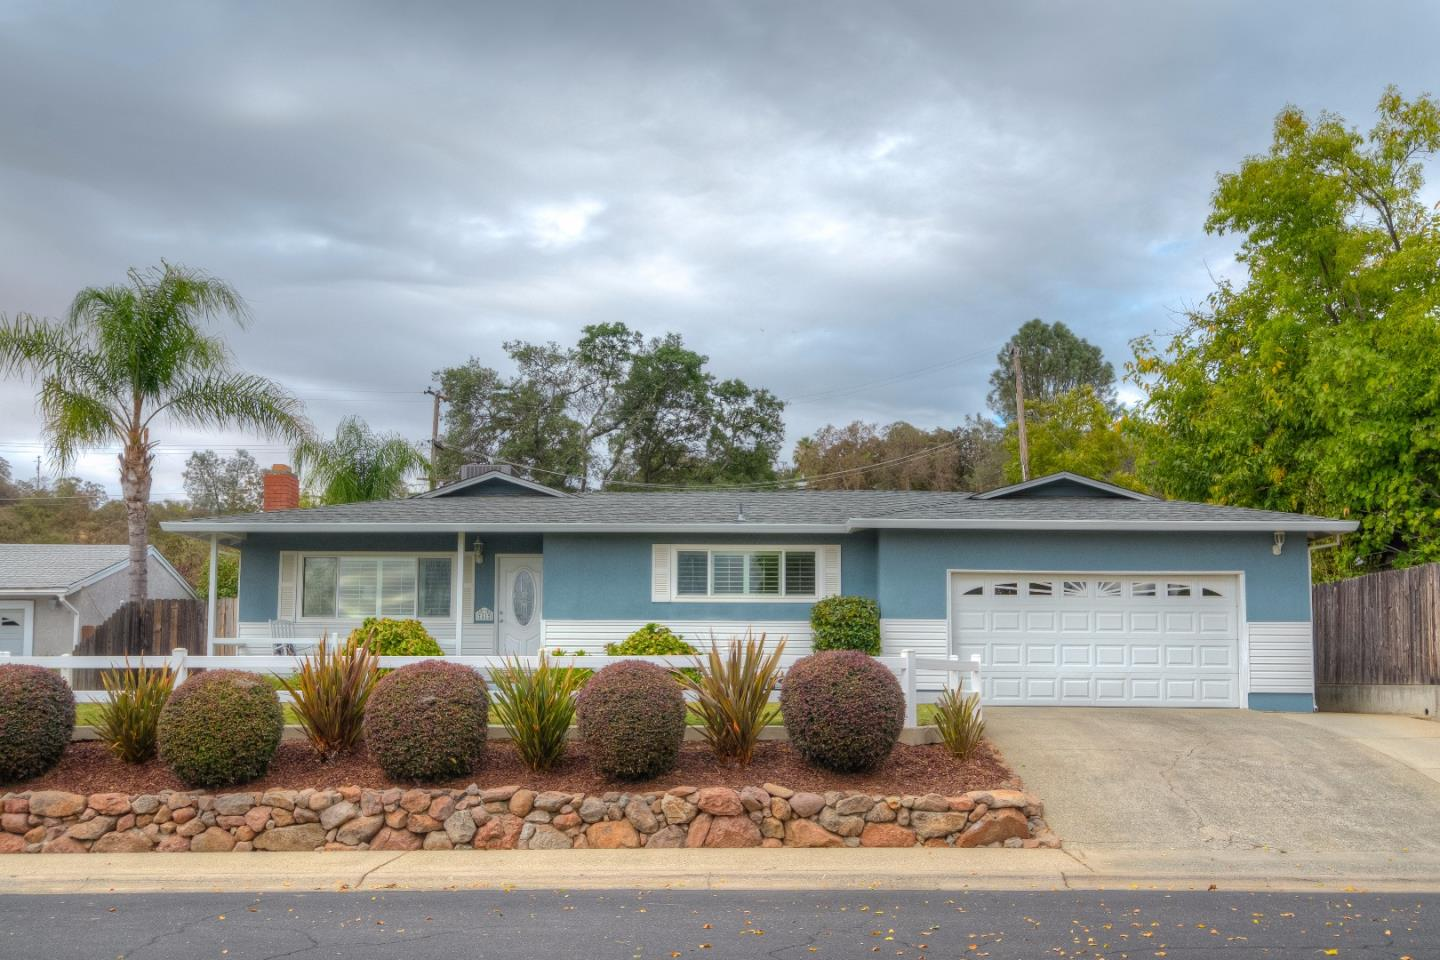 Single Family Home for Sale at 41 Linda Drive 41 Linda Drive Oroville, California 95966 United States